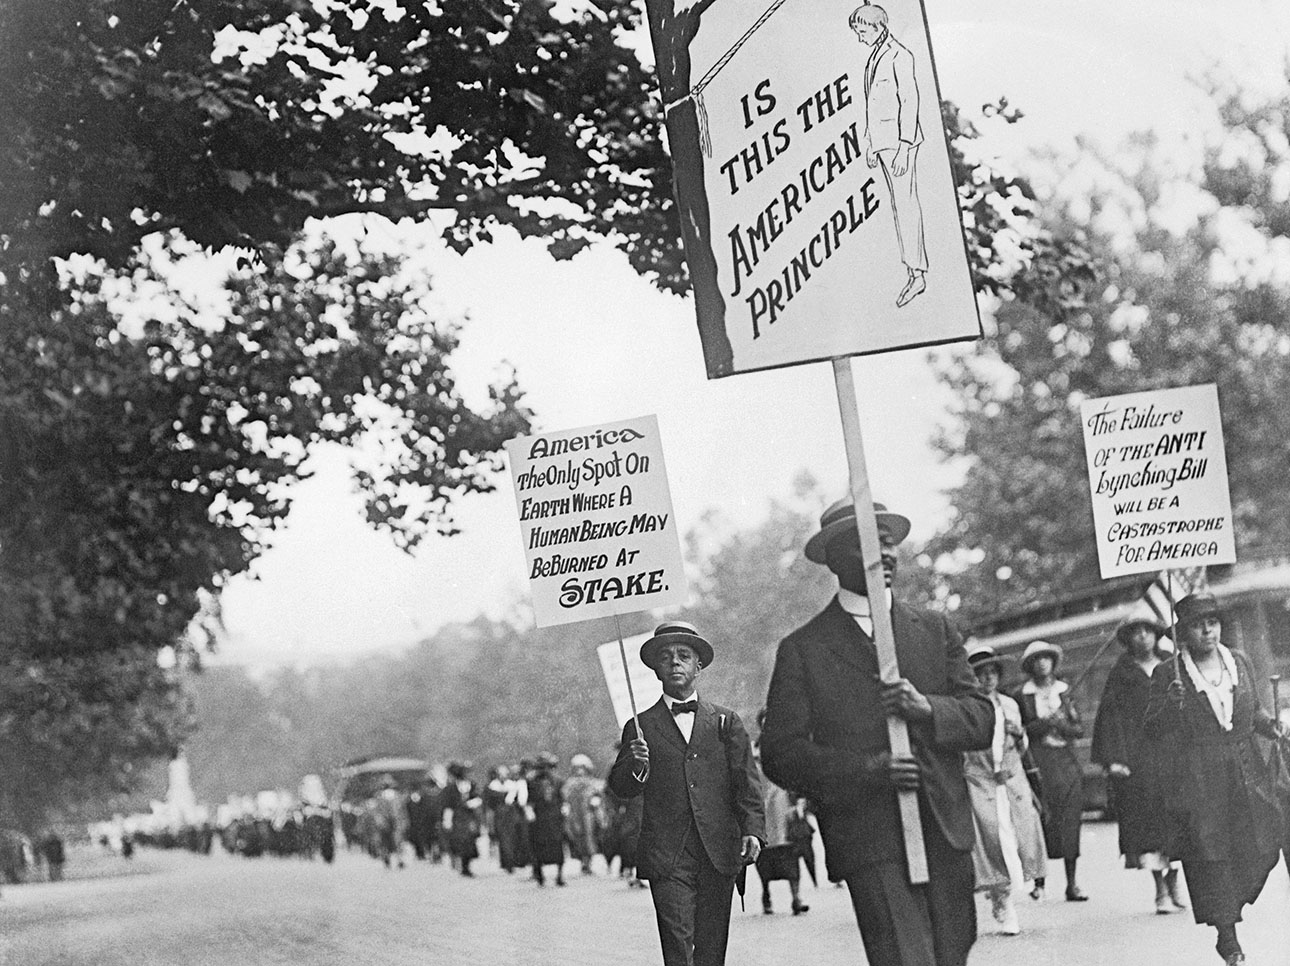 1922 Protest